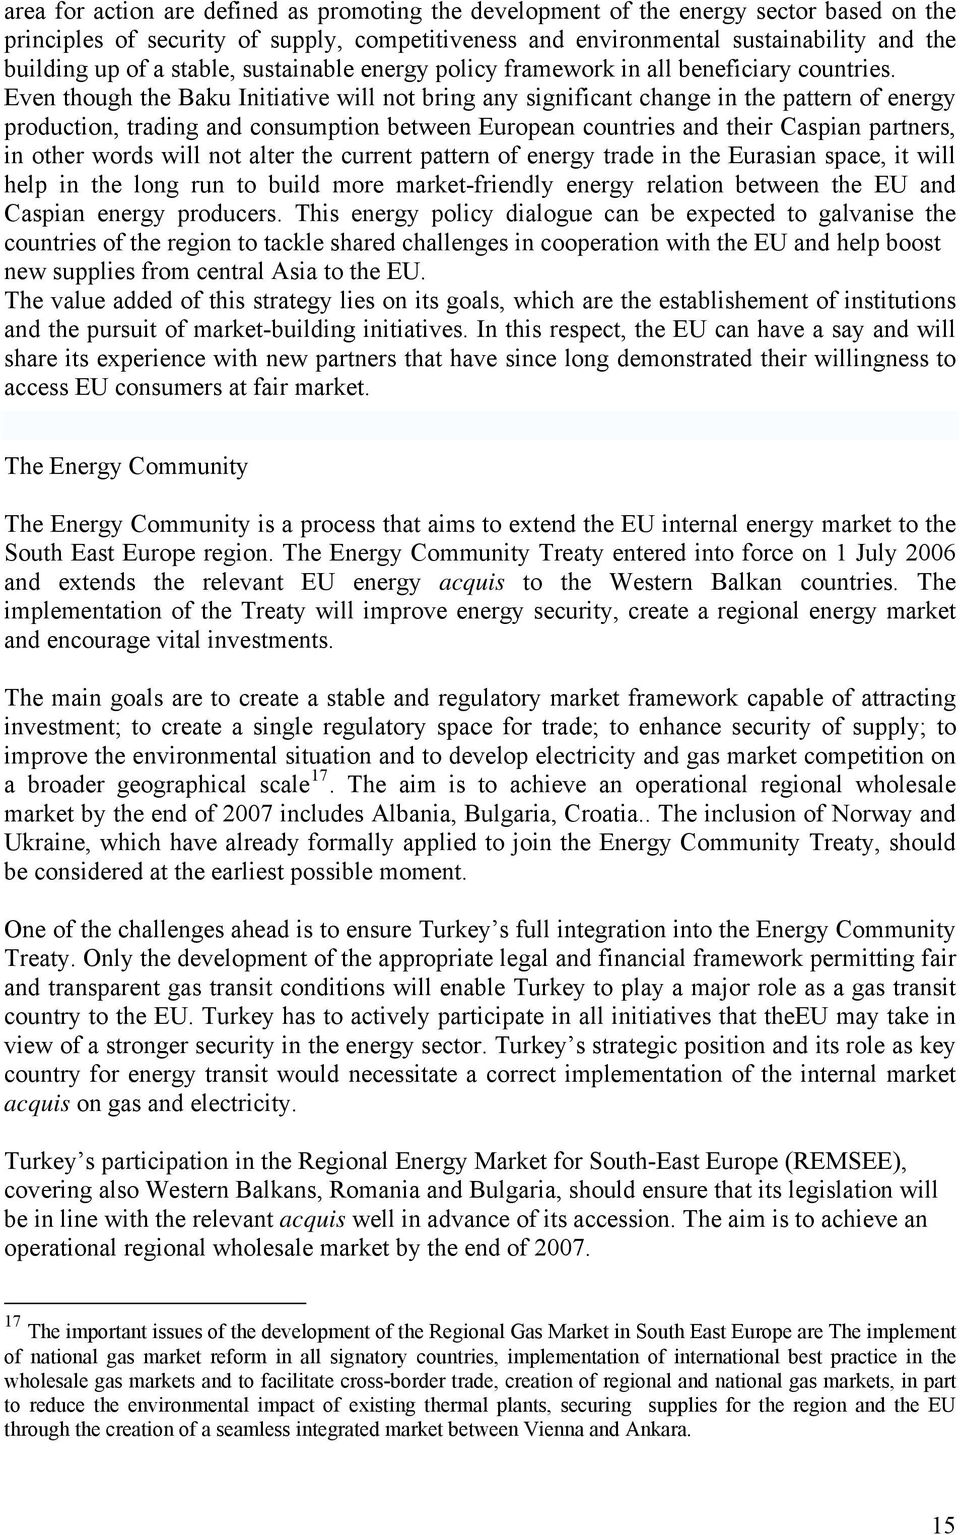 Even though the Baku Initiative will not bring any significant change in the pattern of energy production, trading and consumption between European countries and their Caspian partners, in other